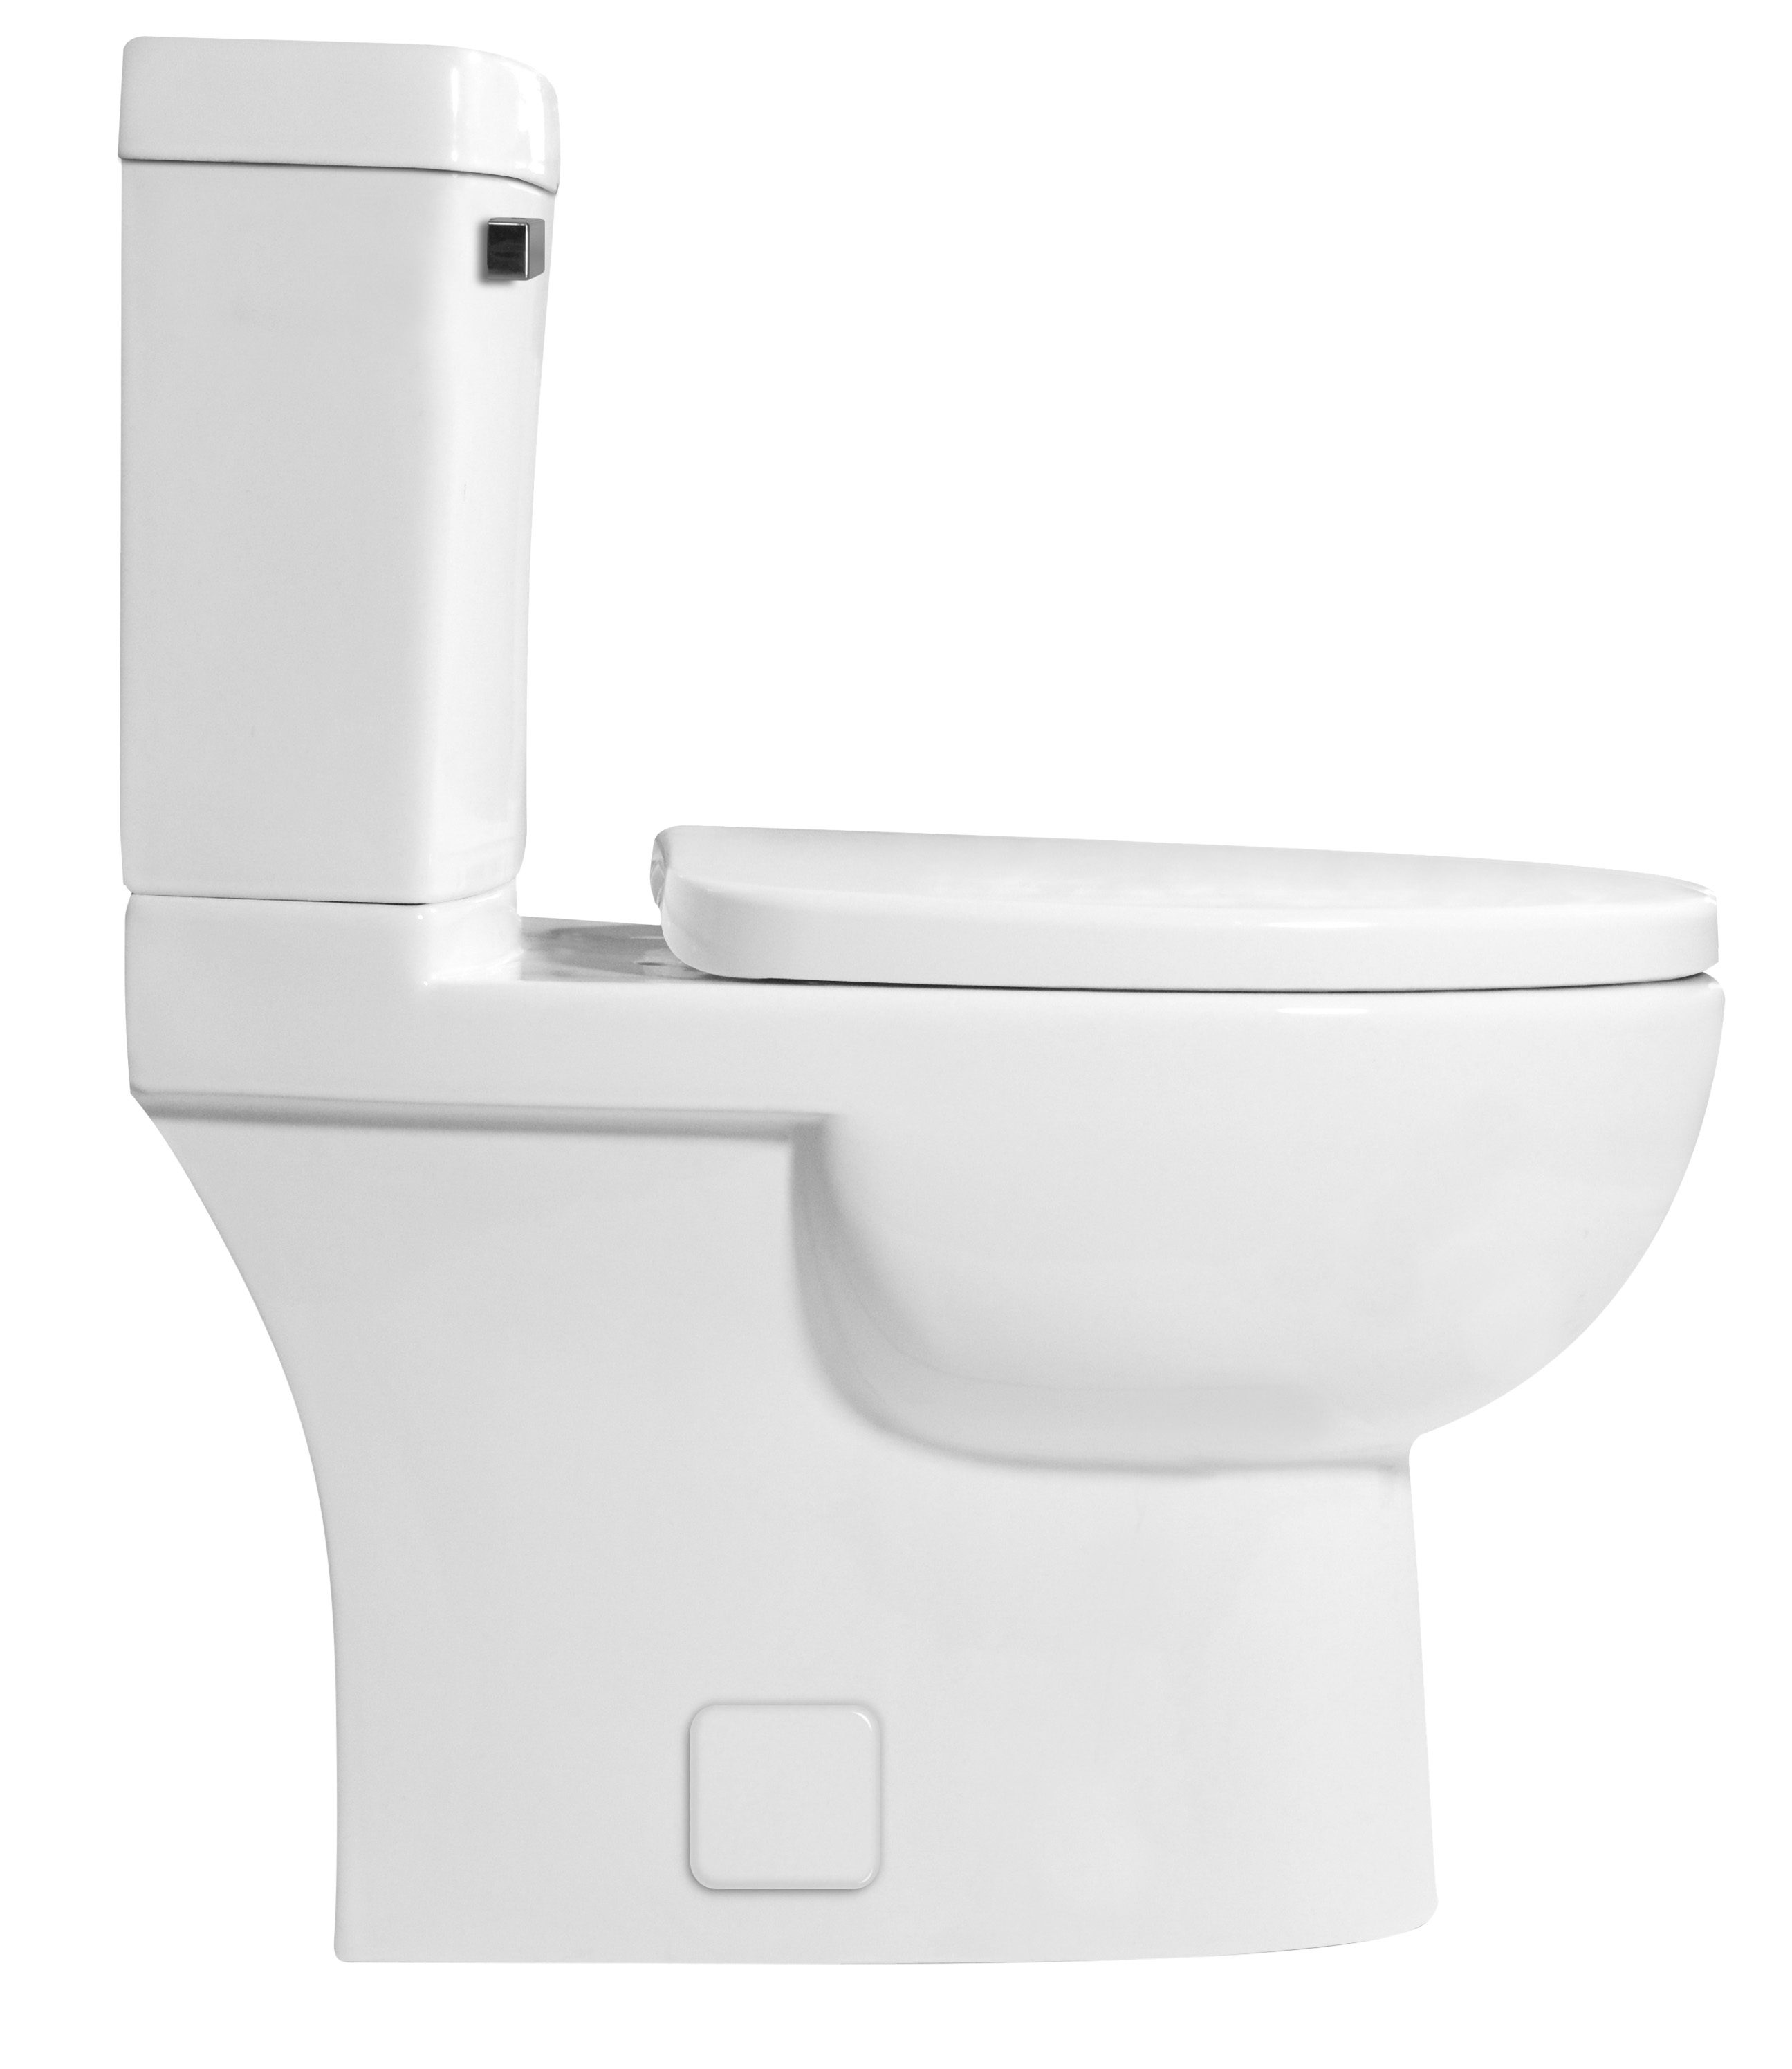 Icera Low Flow Toilet For Small Bathroom Products